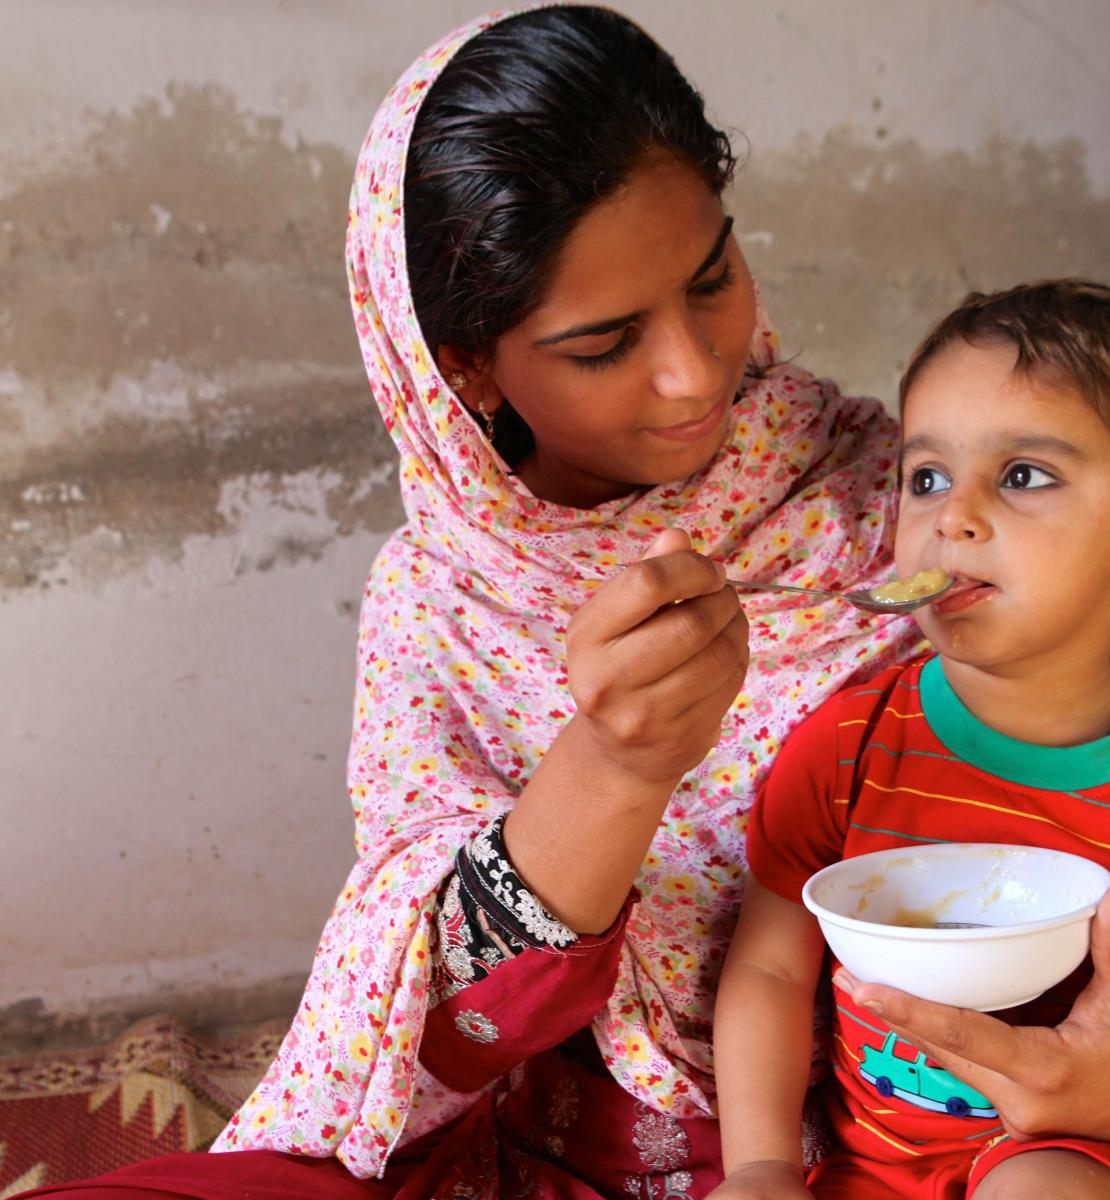 A young woman holds a child in her lap while she feeds him from a bowl.